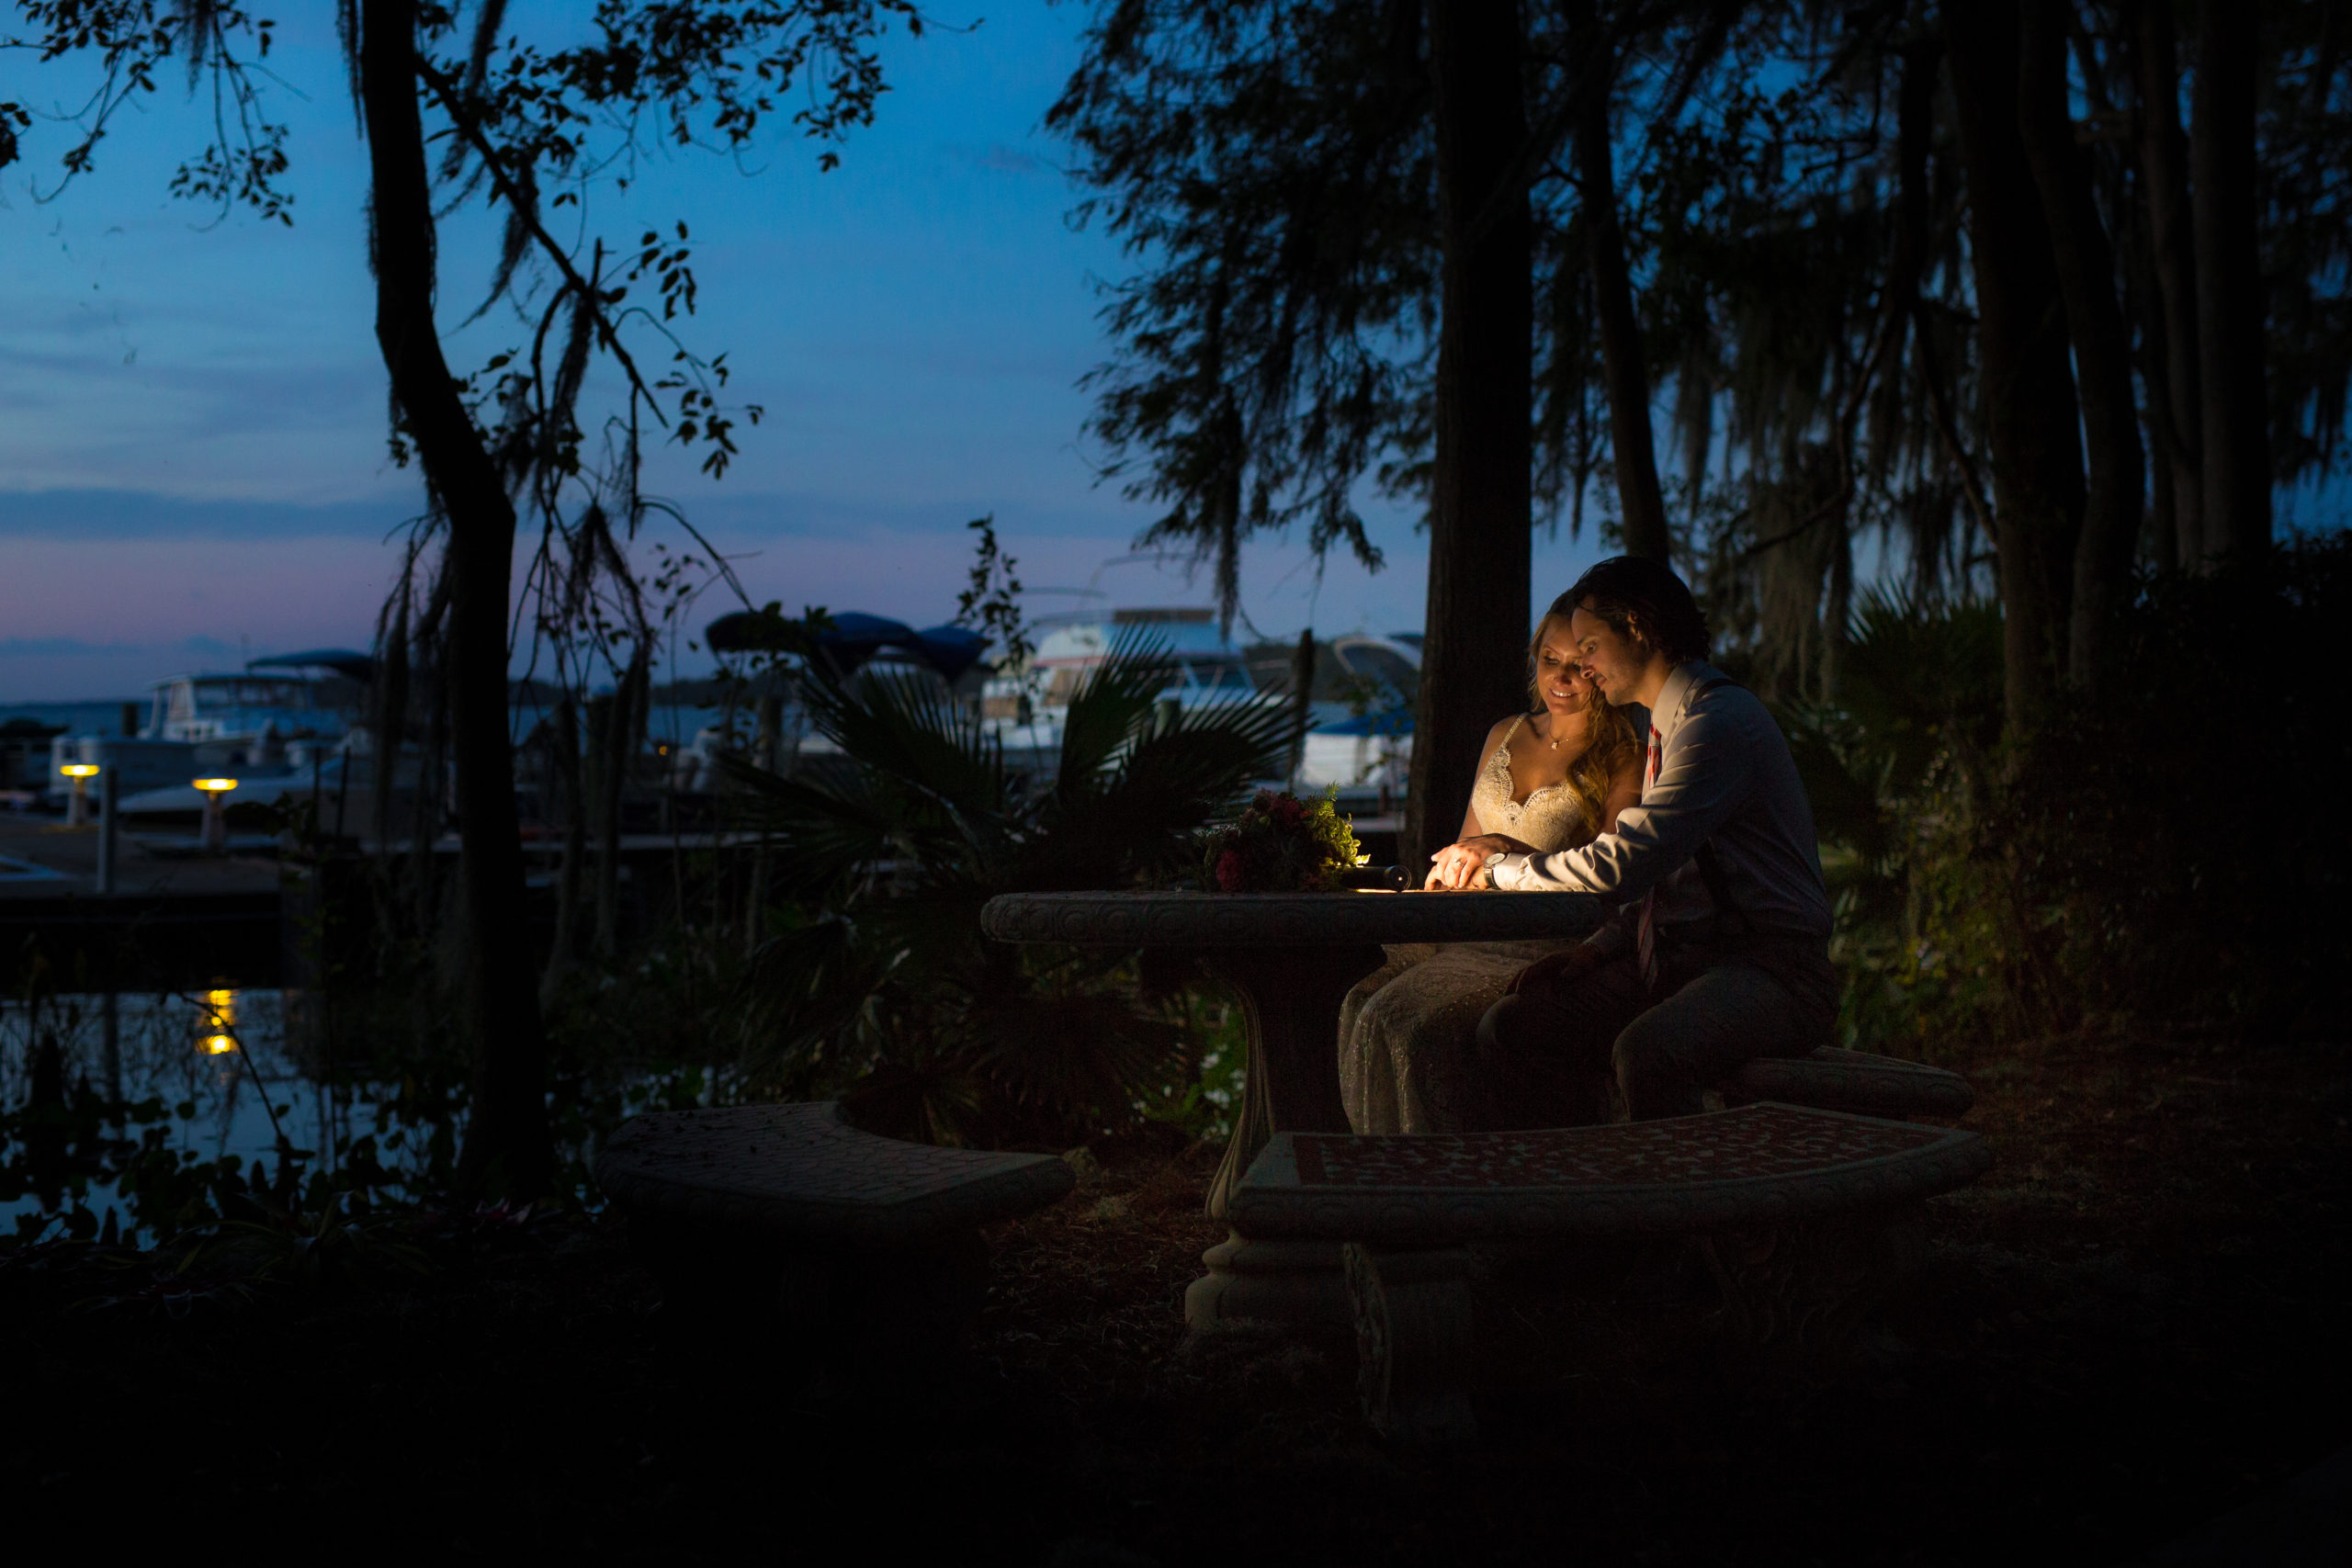 Star Gazing at Home Date Night Ideas